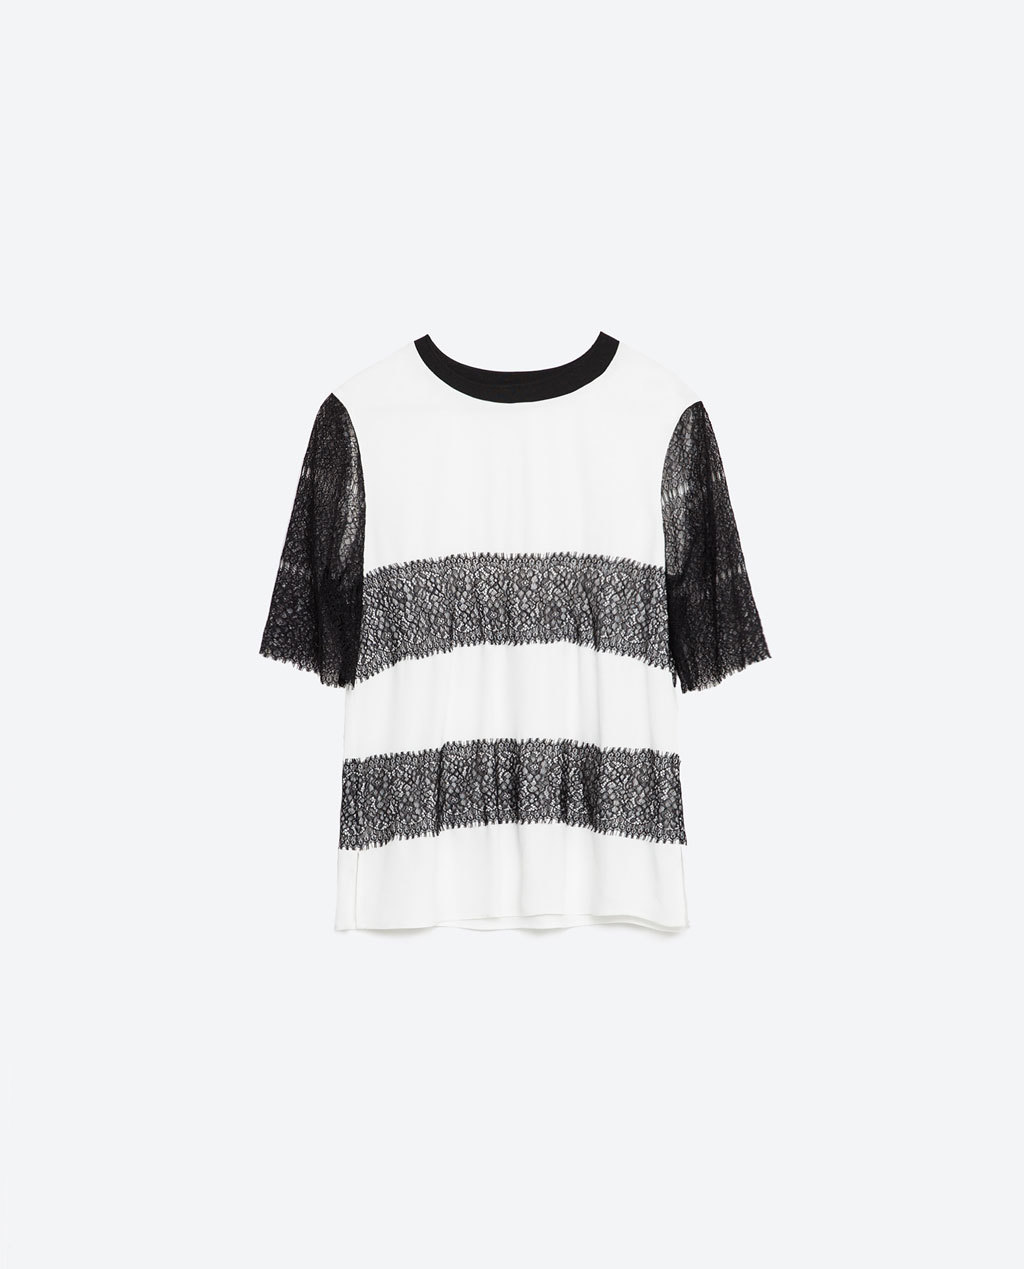 Top With Lace Sleeves - pattern: horizontal stripes; predominant colour: white; secondary colour: black; occasions: casual; length: standard; style: top; fibres: viscose/rayon - 100%; fit: loose; neckline: crew; sleeve length: short sleeve; sleeve style: standard; texture group: lace; pattern type: fabric; season: s/s 2016; wardrobe: highlight